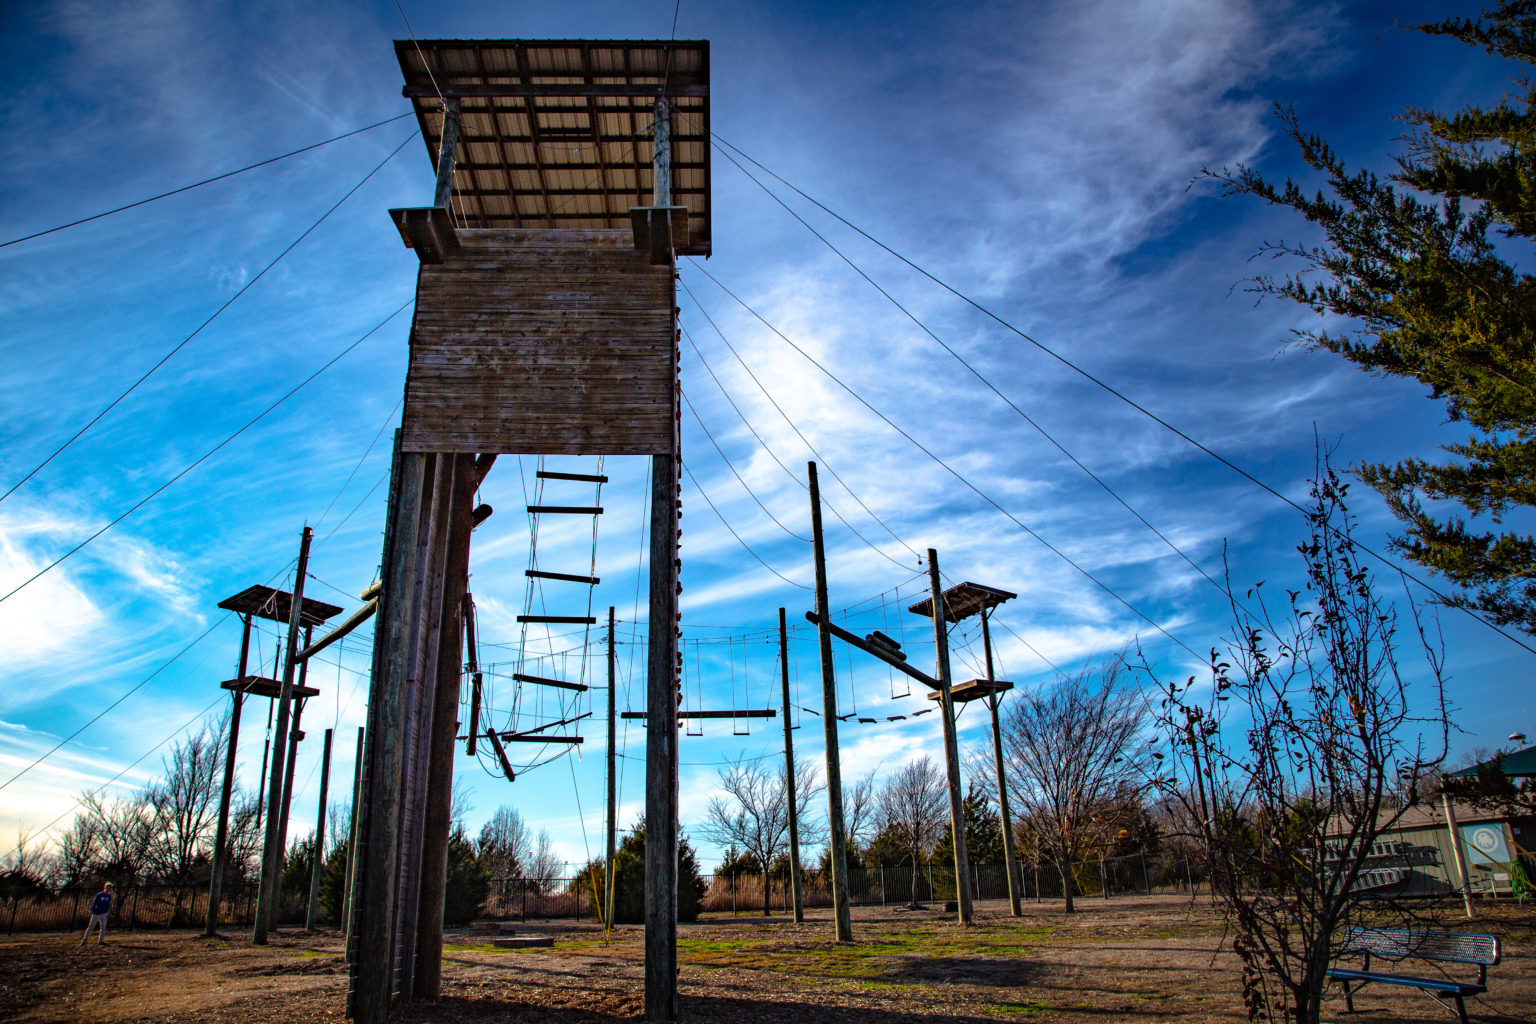 Challenge Course at the Outdoor Adventure Center.